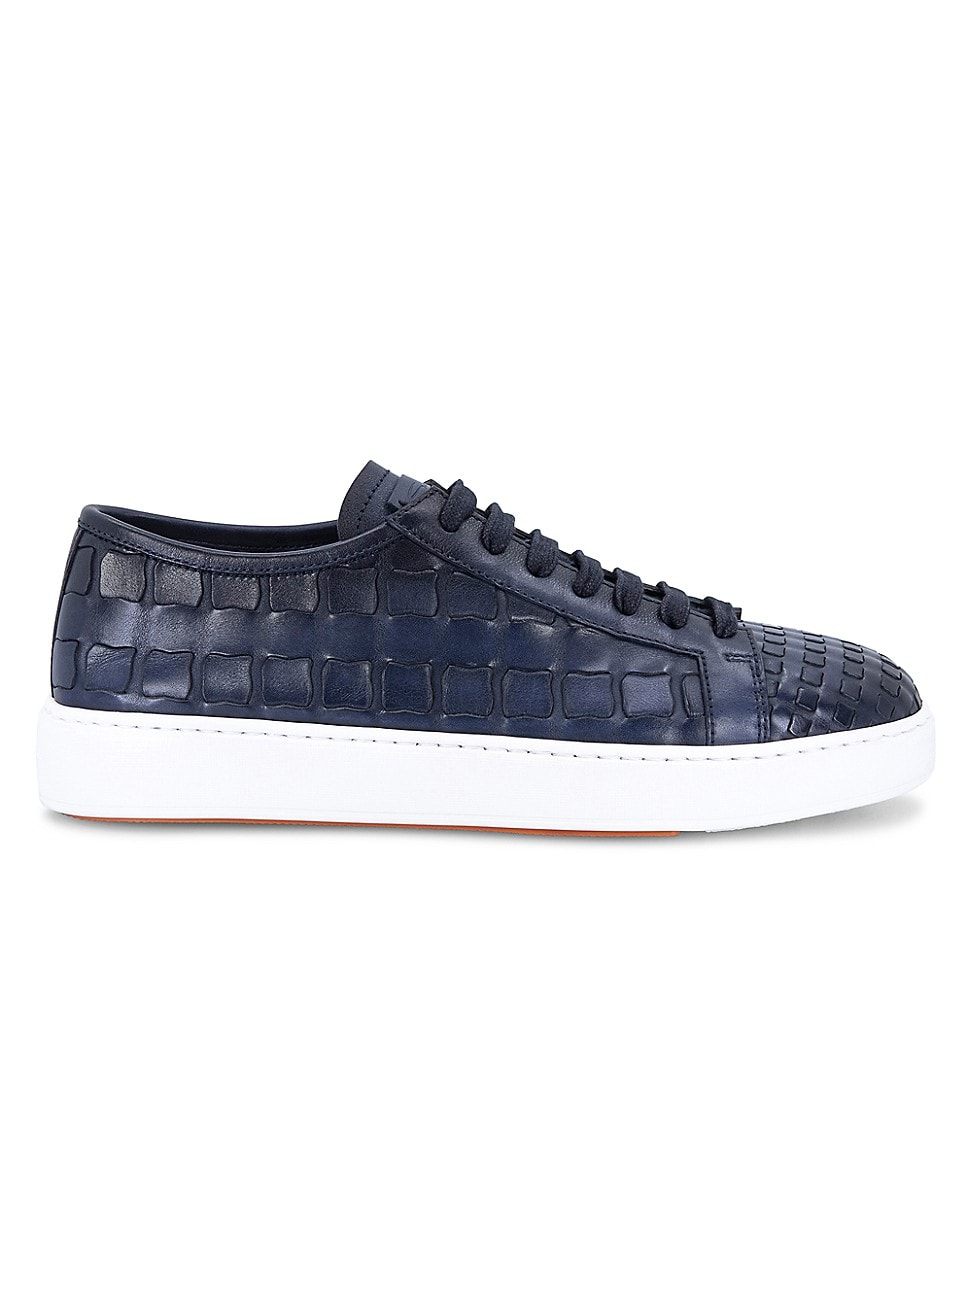 Santoni MEN'S LACE-UP WOVEN LEATHER SNEAKERS